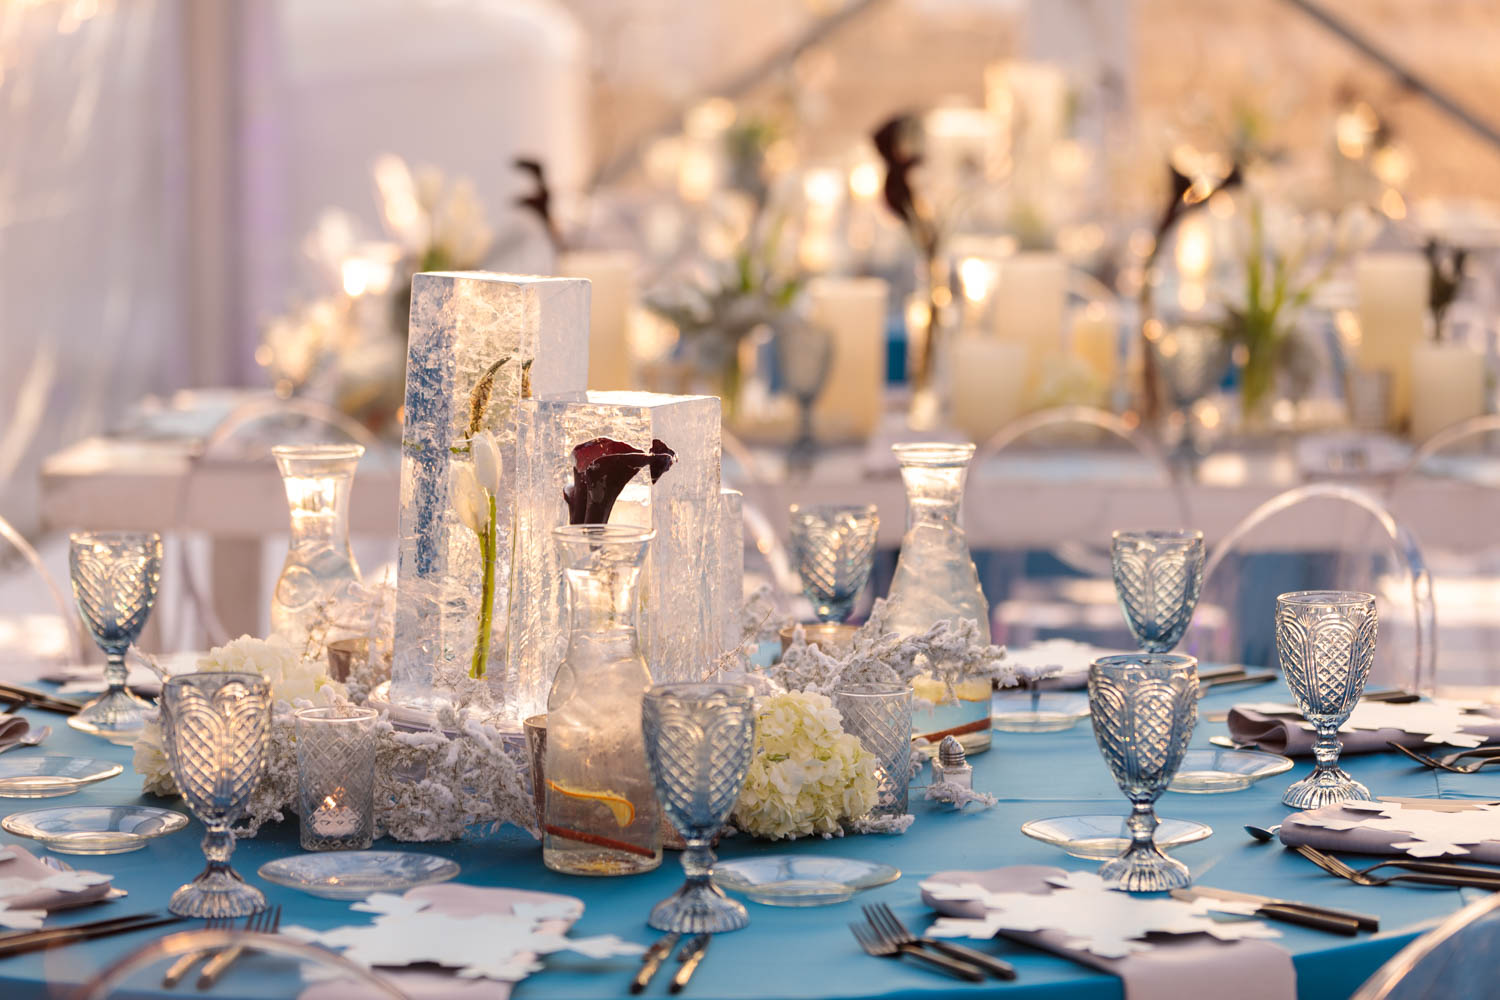 Event design by Silver Summit